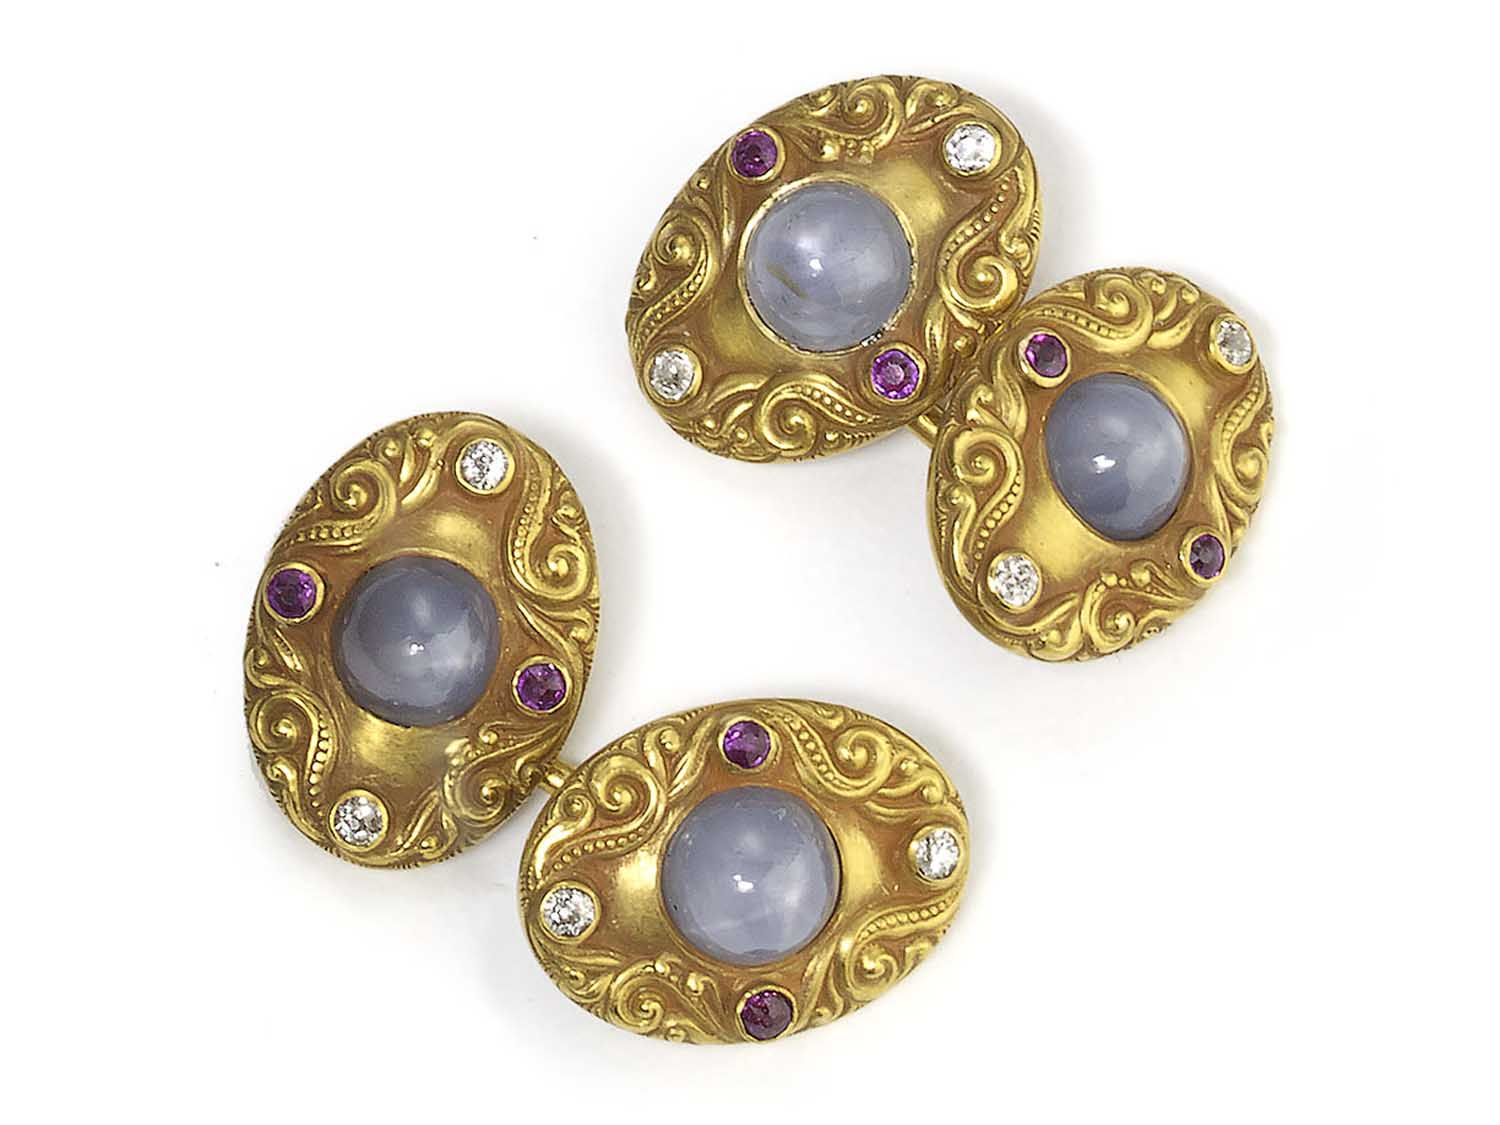 Antiqueperiod cufflinks dress sets jewellery discovery antique star sapphire ruby and diamond cufflinks victorian gold oval sciox Image collections